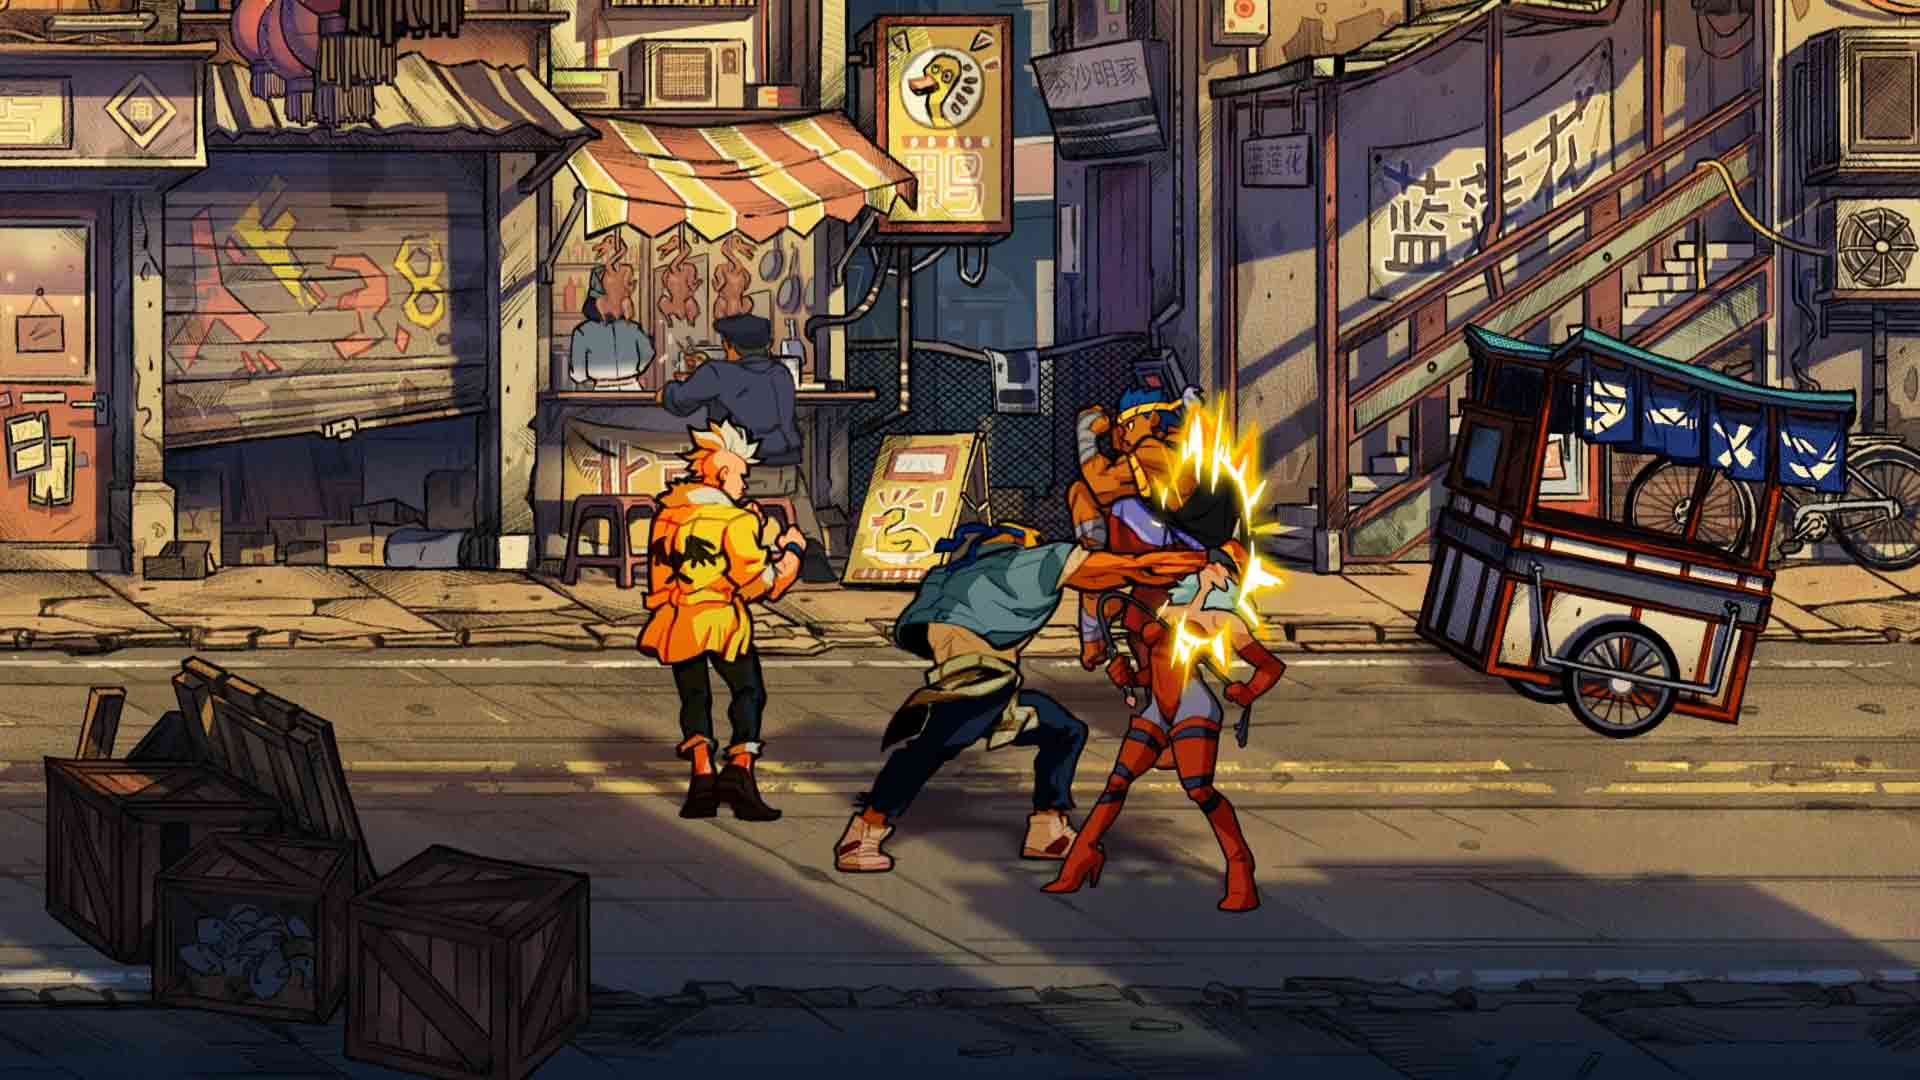 Jonathan Khersis Streets of Rage 1 & 2 Soundtracks Interview